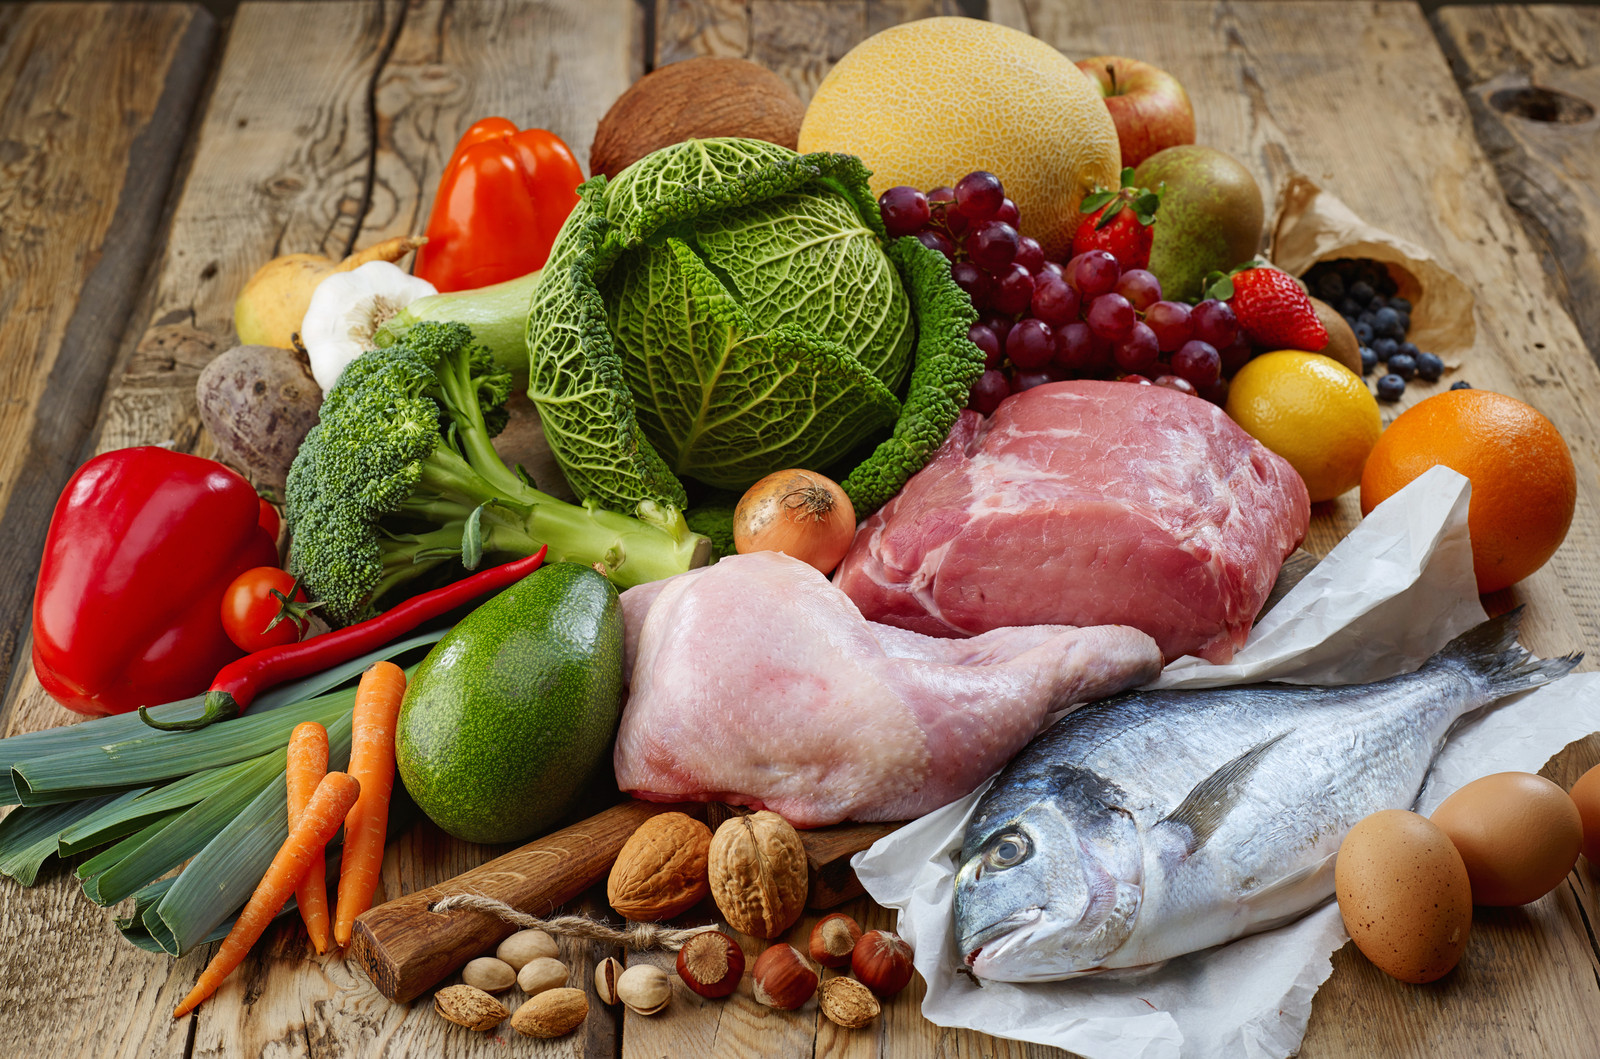 Choosing A Healthy Diet – Is Paleo Diet A Good Idea?